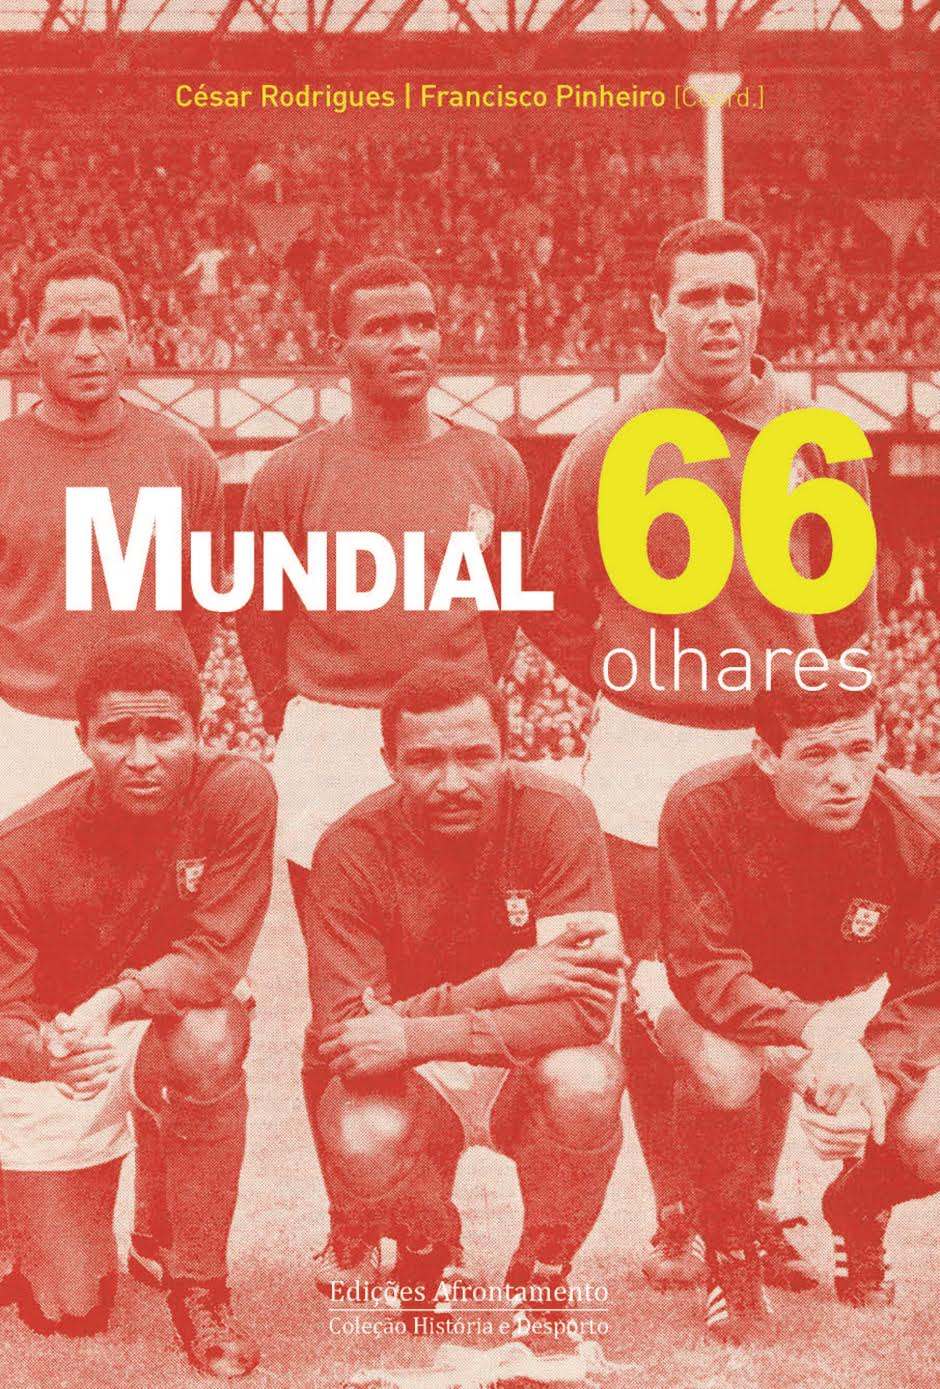 66olhares